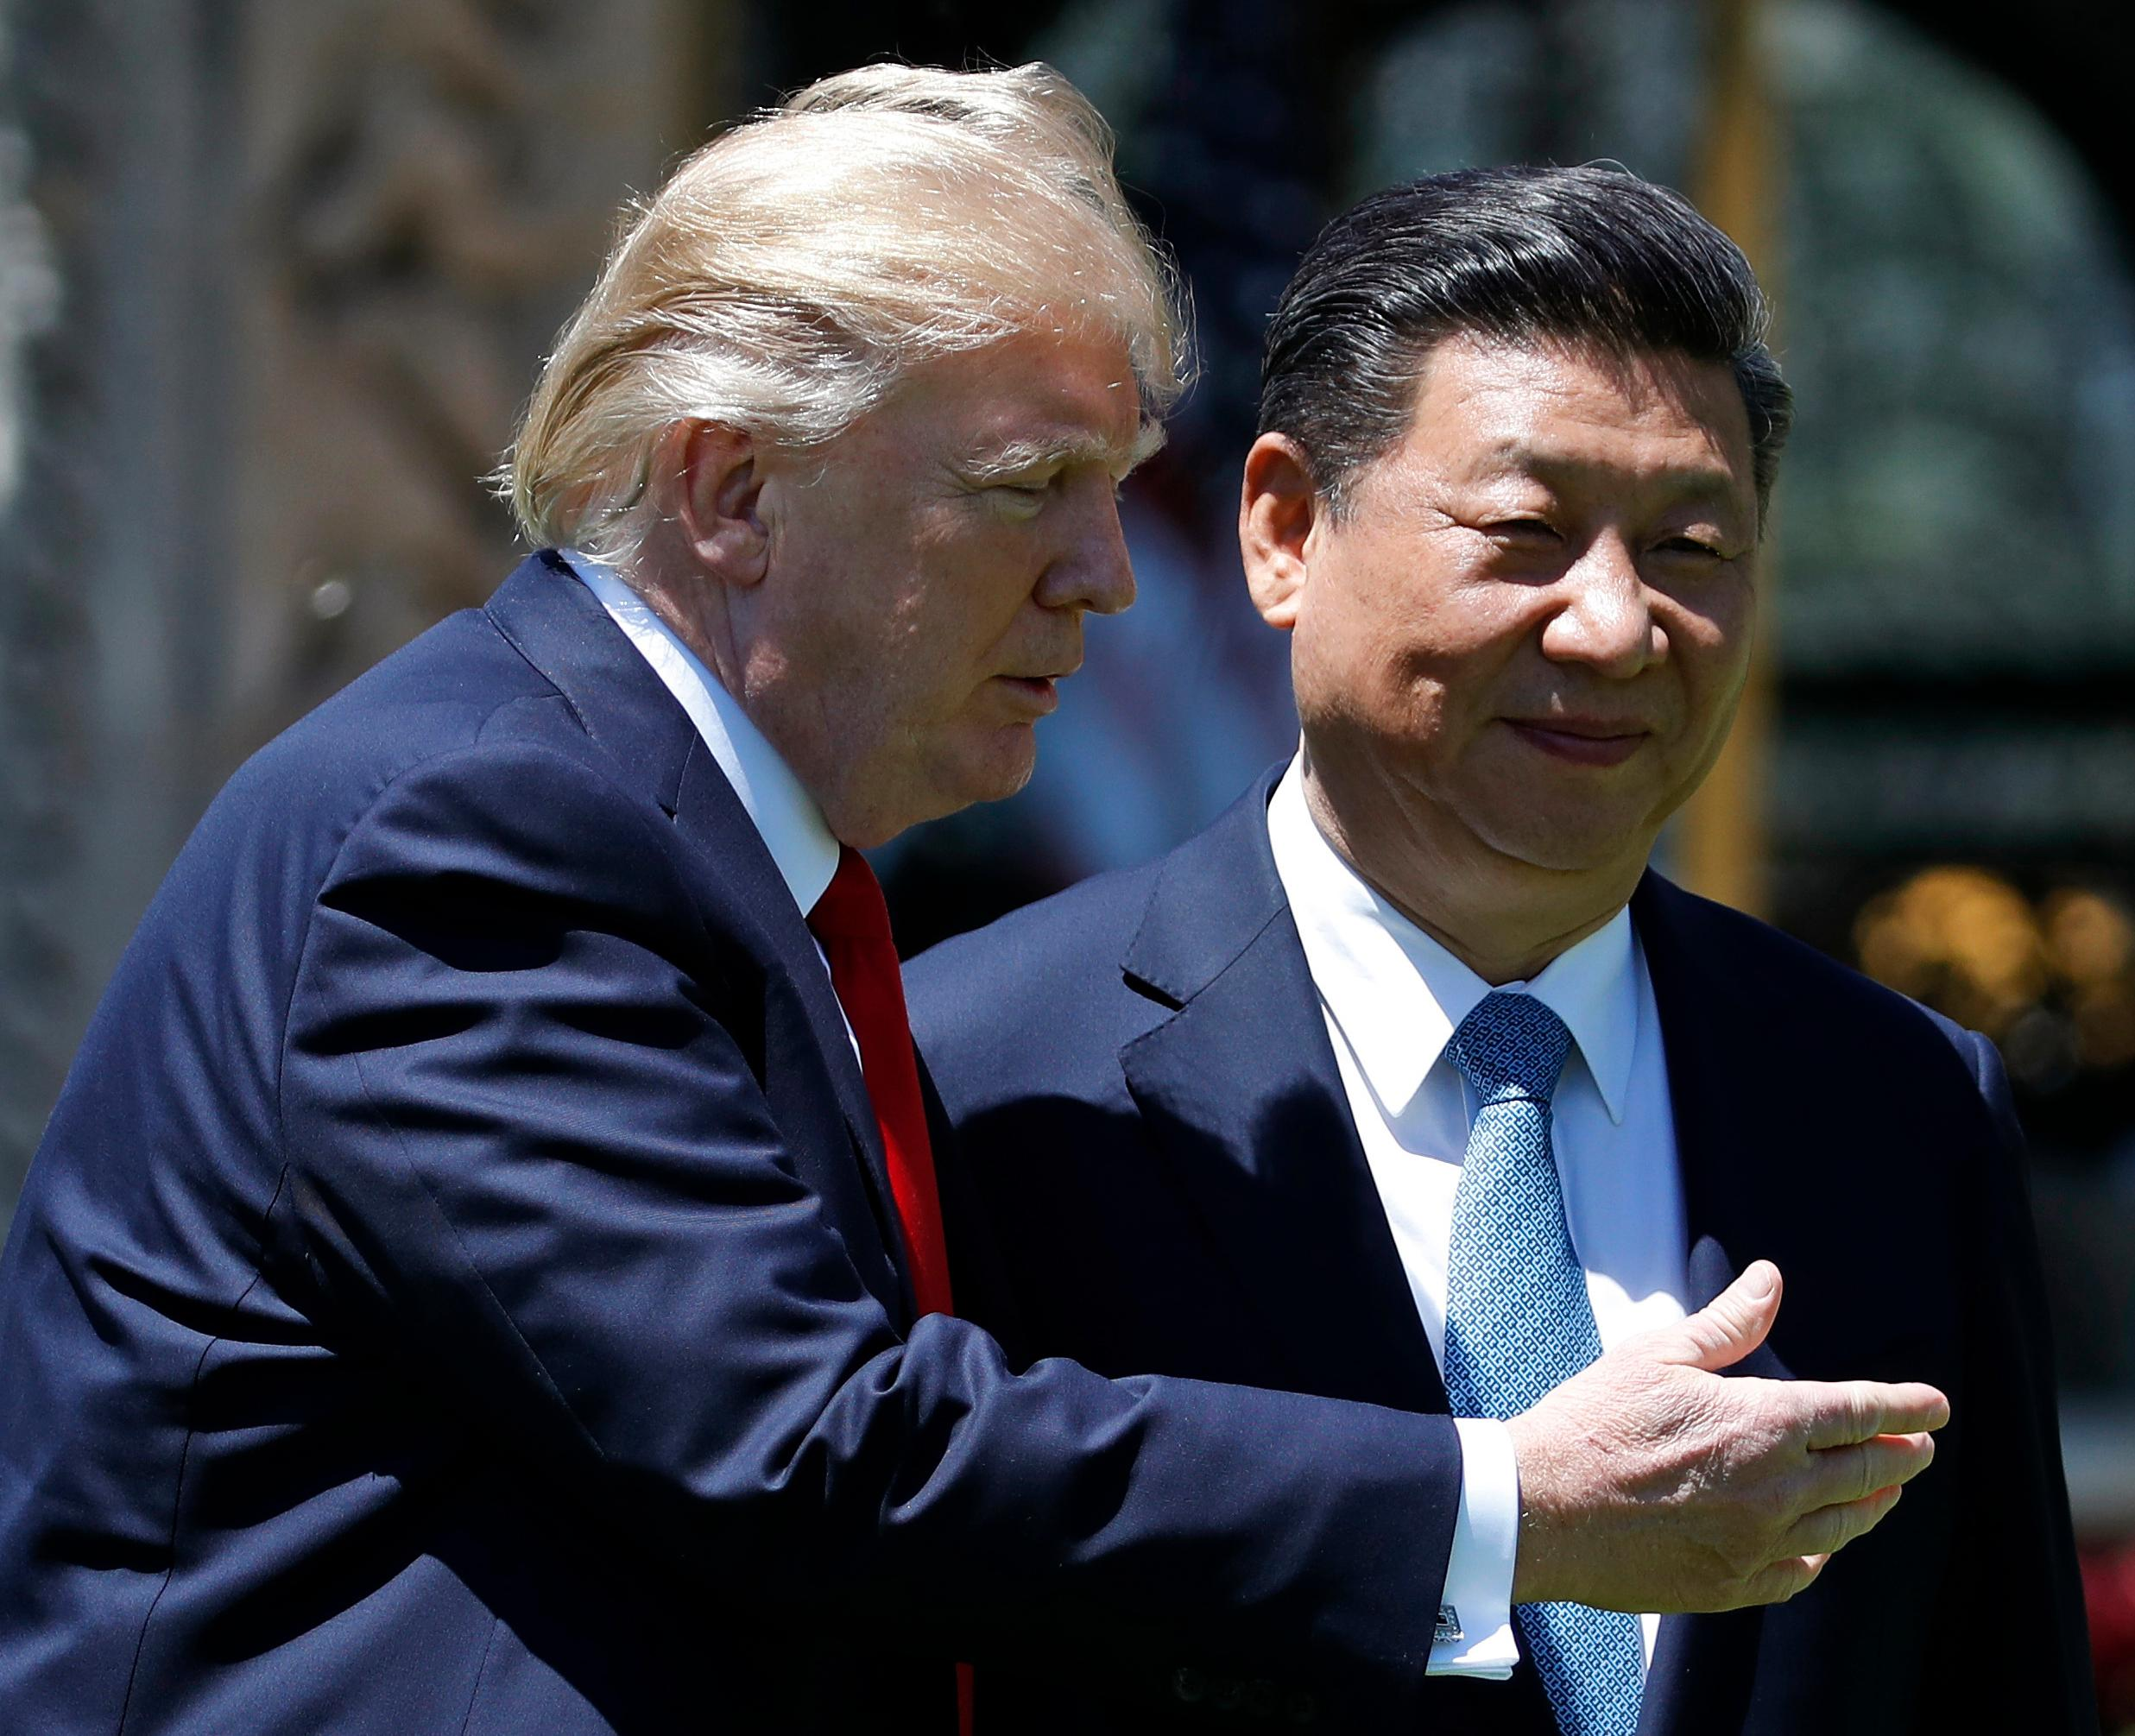 FILE - In this April 7, 2017, file photo, U.S. President Donald Trump gestures as he and Chinese President Xi Jinping walk together after their meetings at Mar-a-Lago in Palm Beach, Fla. After decades of failure to stop North Korea's march toward a nuclear arsenal, some see Trump's bluster as a shrewd attempt to press China, the North's most important ally and trading partner, into pressuring North Korea more aggressively over its nuclear program. (AP Photo/Alex Brandon, File)